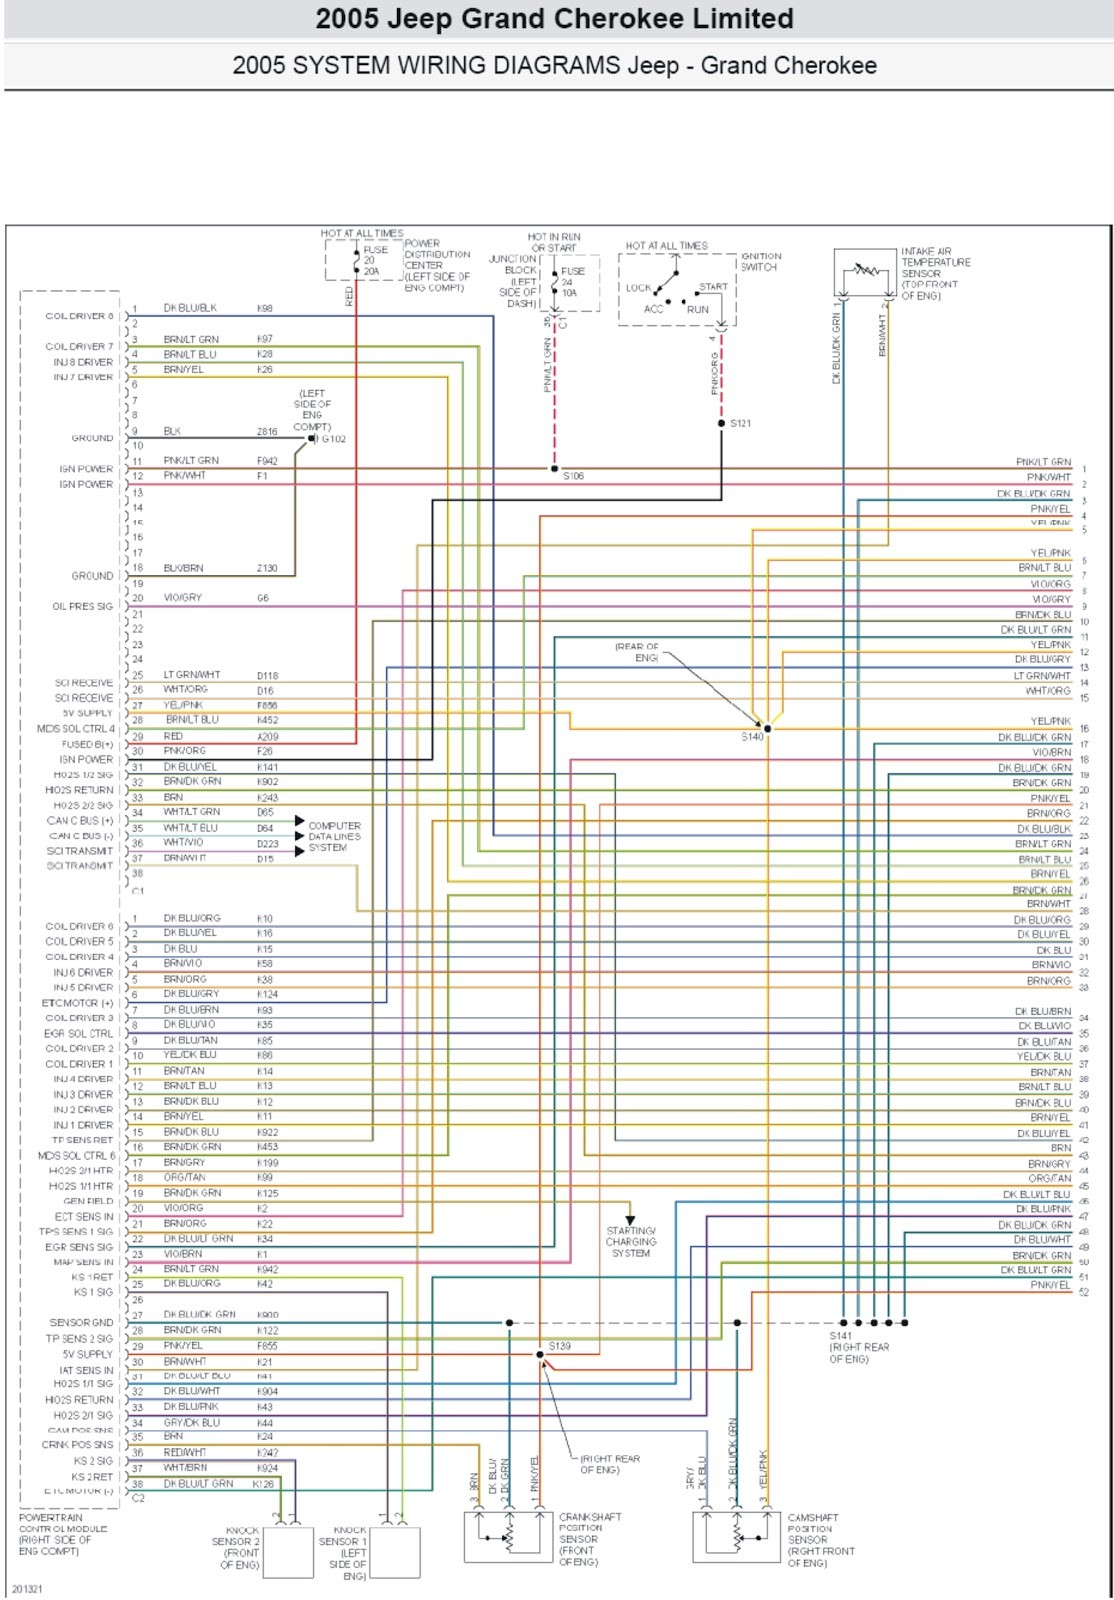 2001 Jeep Wrangler Radio Wiring Diagram from static-resources.imageservice.cloud